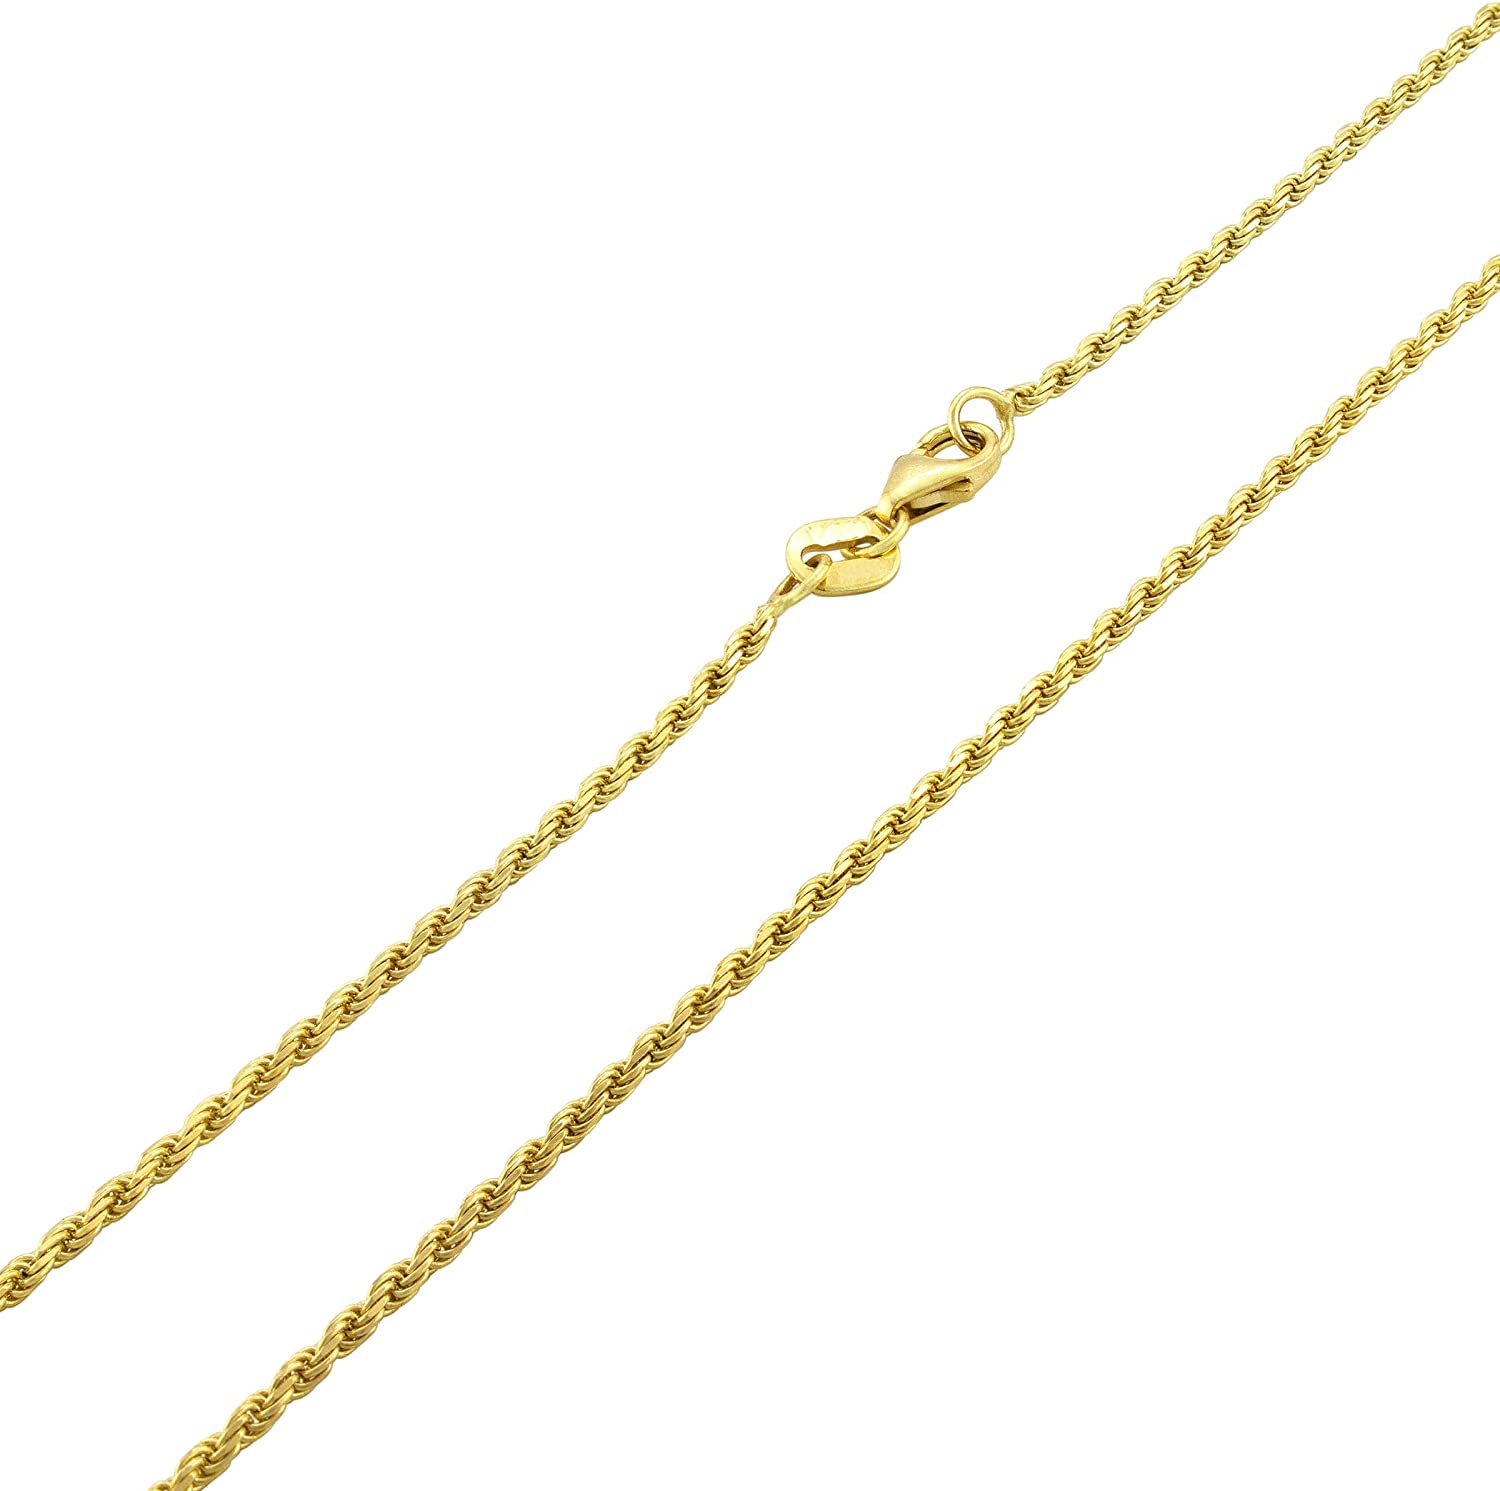 Nuragold 14k Yellow Gold 1.5mm Solid Rope Chain Diamond Cut Pendant Necklace, Mens Womens Lobster Lock 16